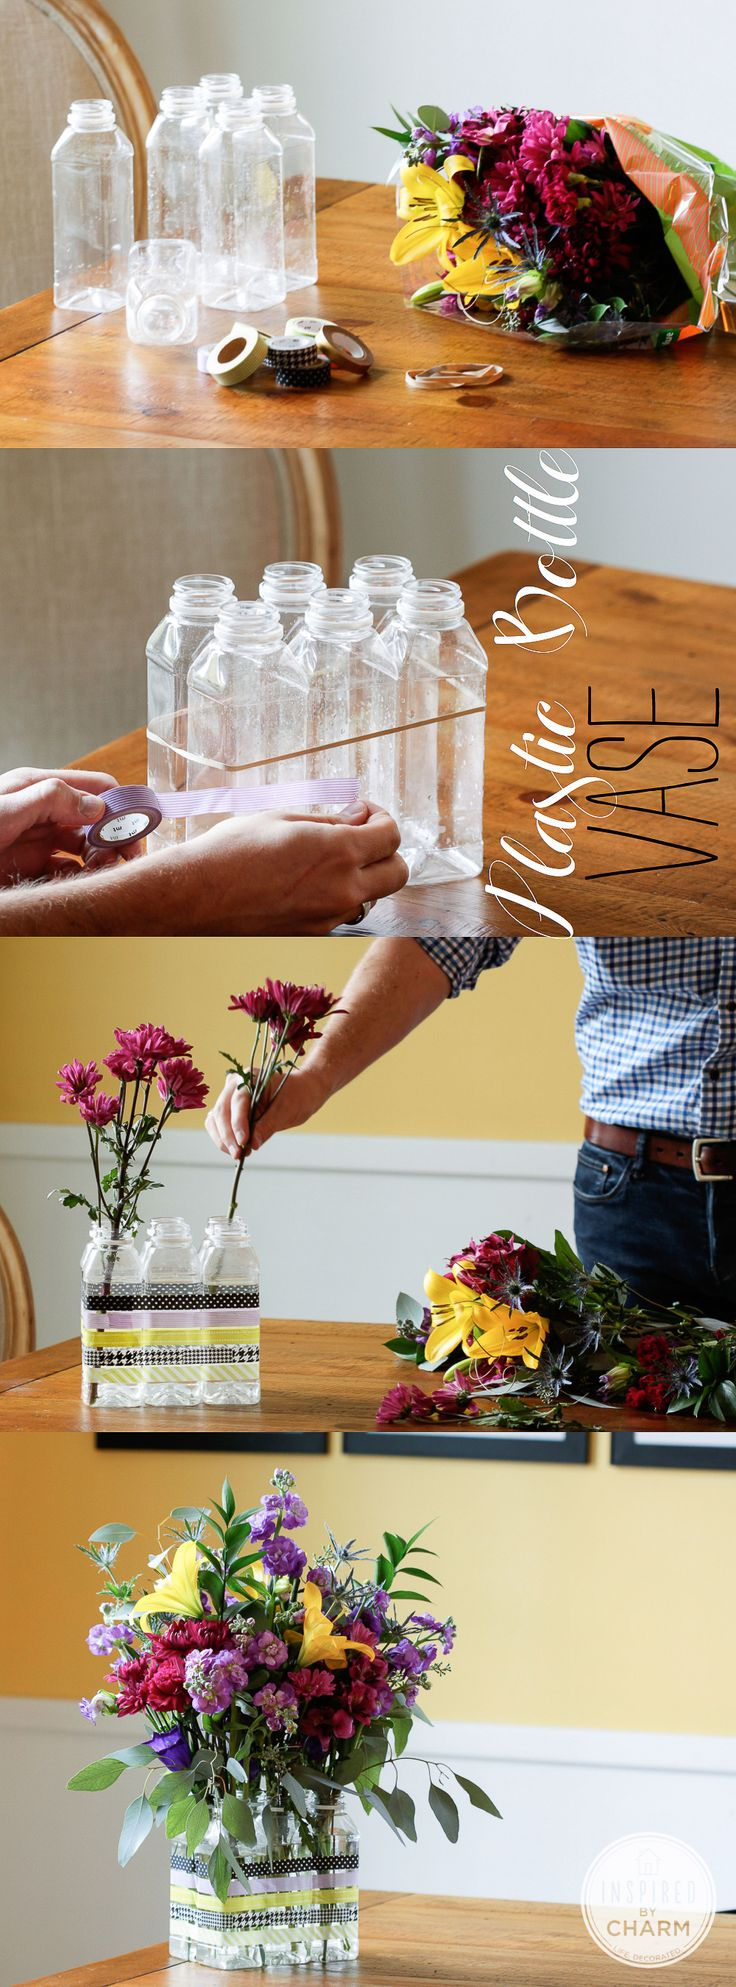 3 unique plastic bottles recycling ideas for home decor for Diy plastic bottle